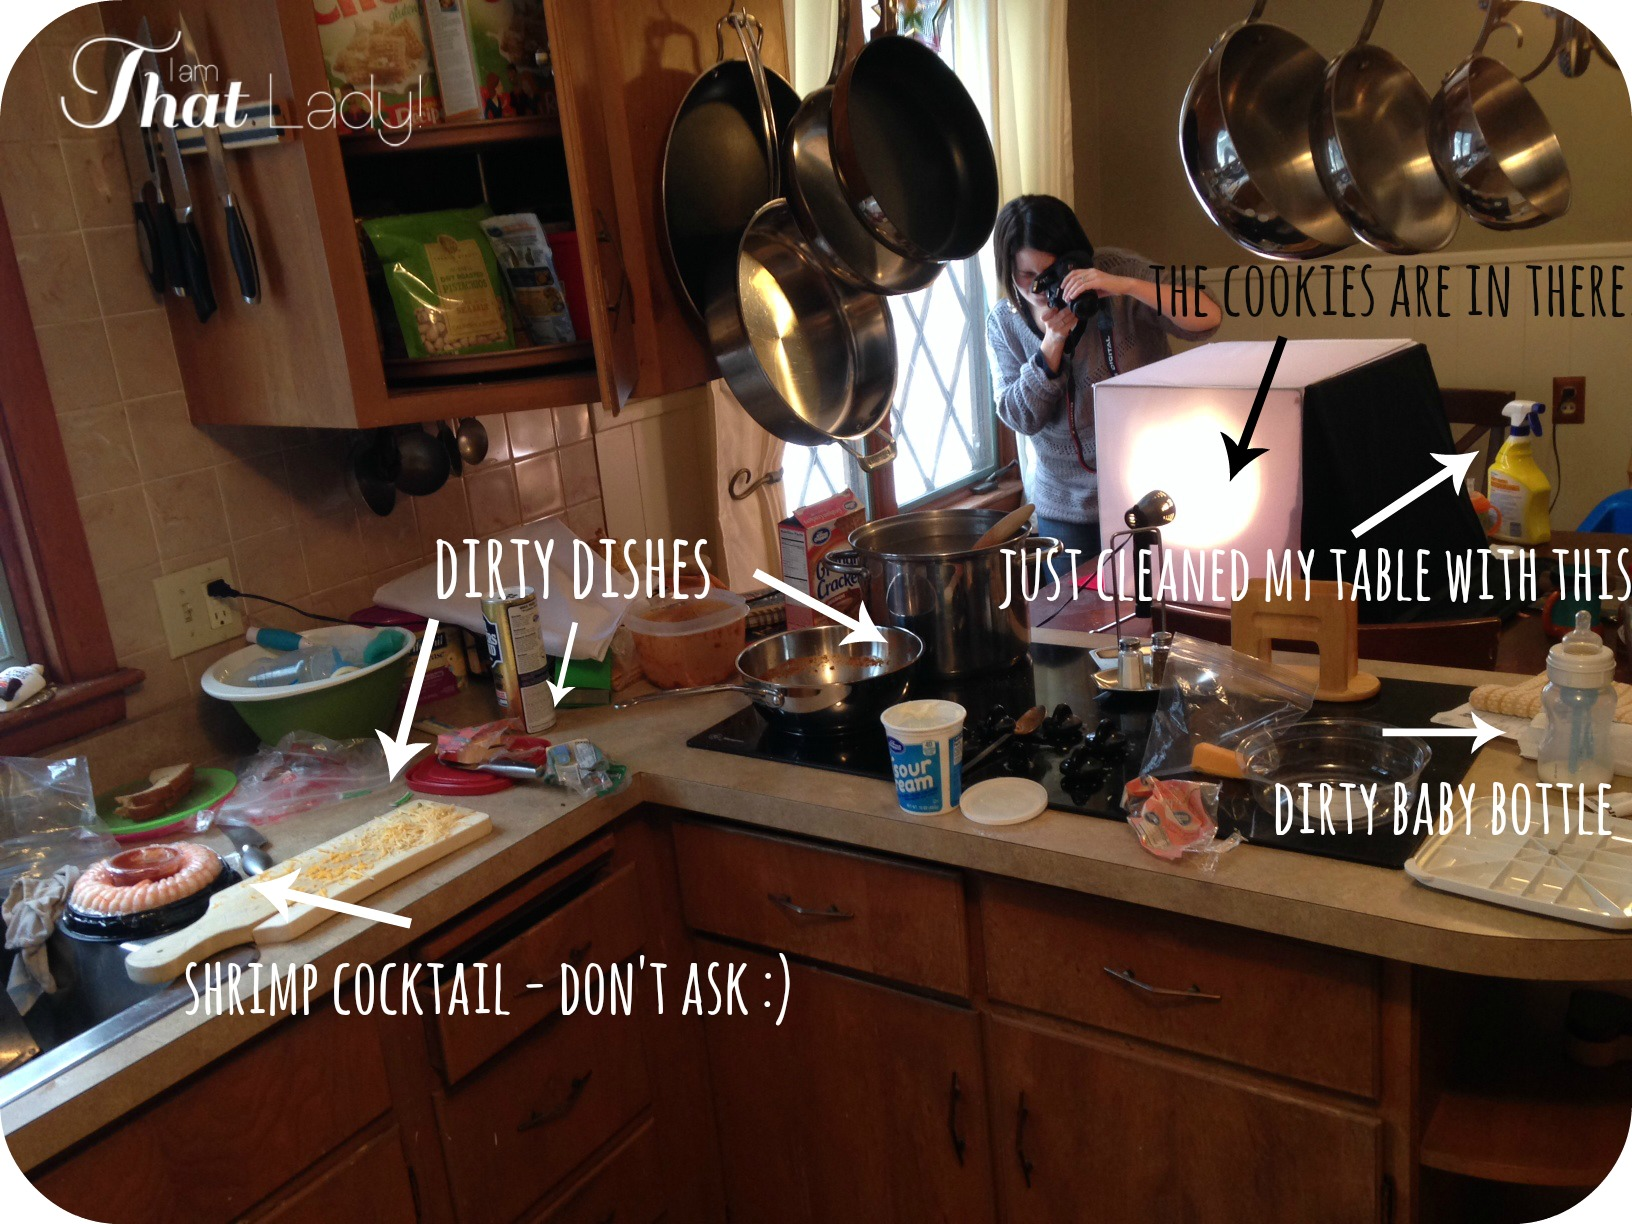 What my kitchen looks like during taking pictures